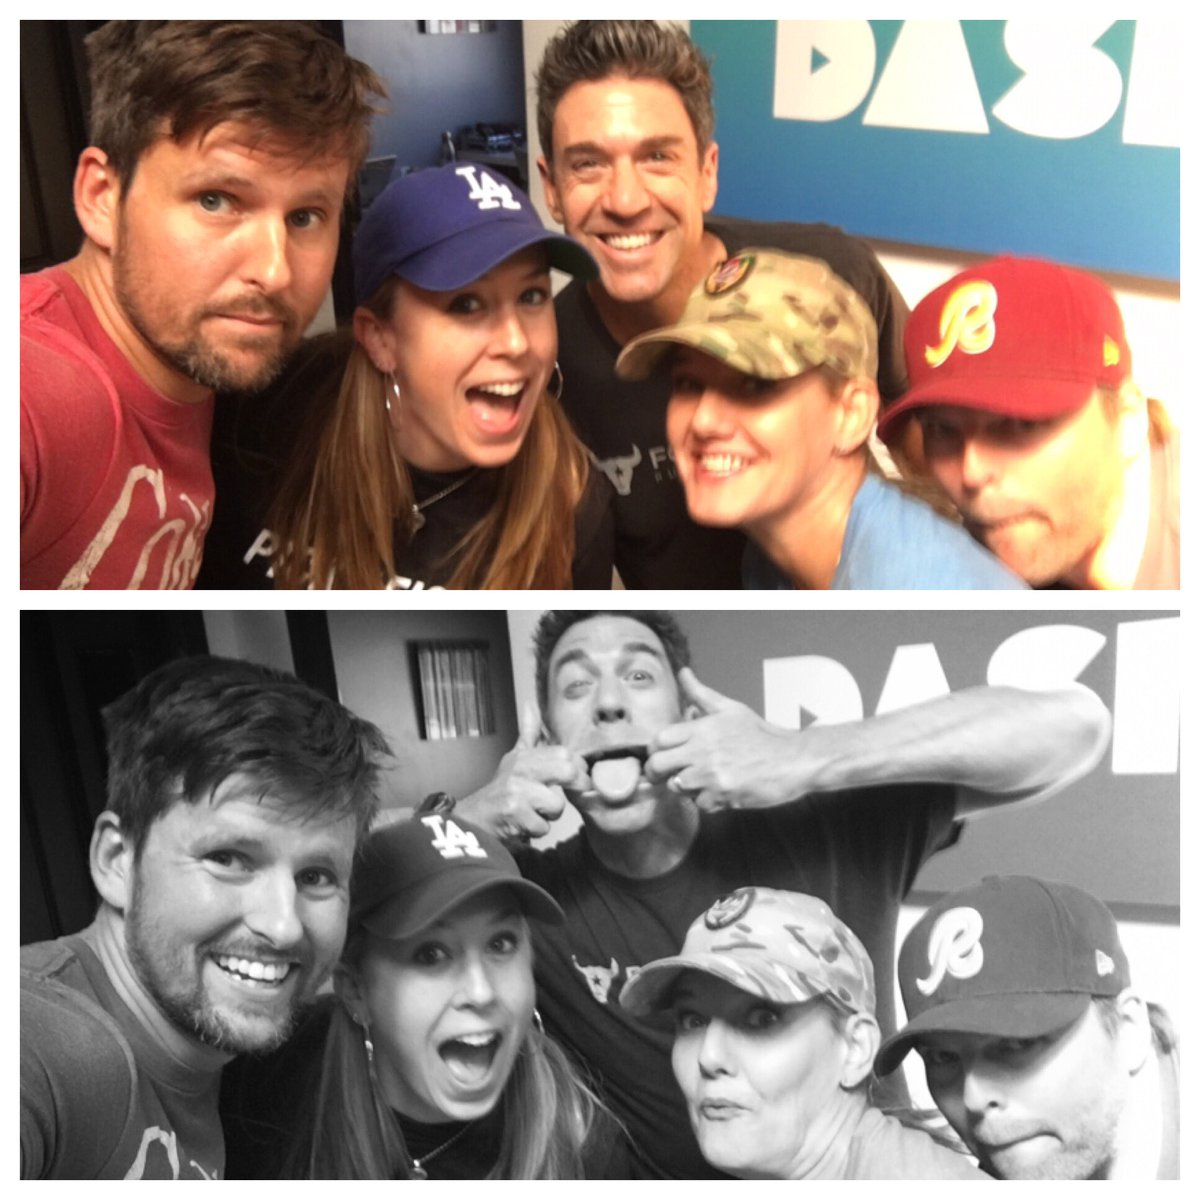 We're on! #FandomSportsRadio with @jenmurphycomedy @eddiepence + special guests @LosANNEgeles62 & @NickDopuch!! LOTSA @Dodgers talk, why we want @RedSox in the #world series, and @Buck hatred at its finest TUNE IN! @dash_radio https://t.co/QfgZvS6ZAs https://t.co/xgYlefhHnw